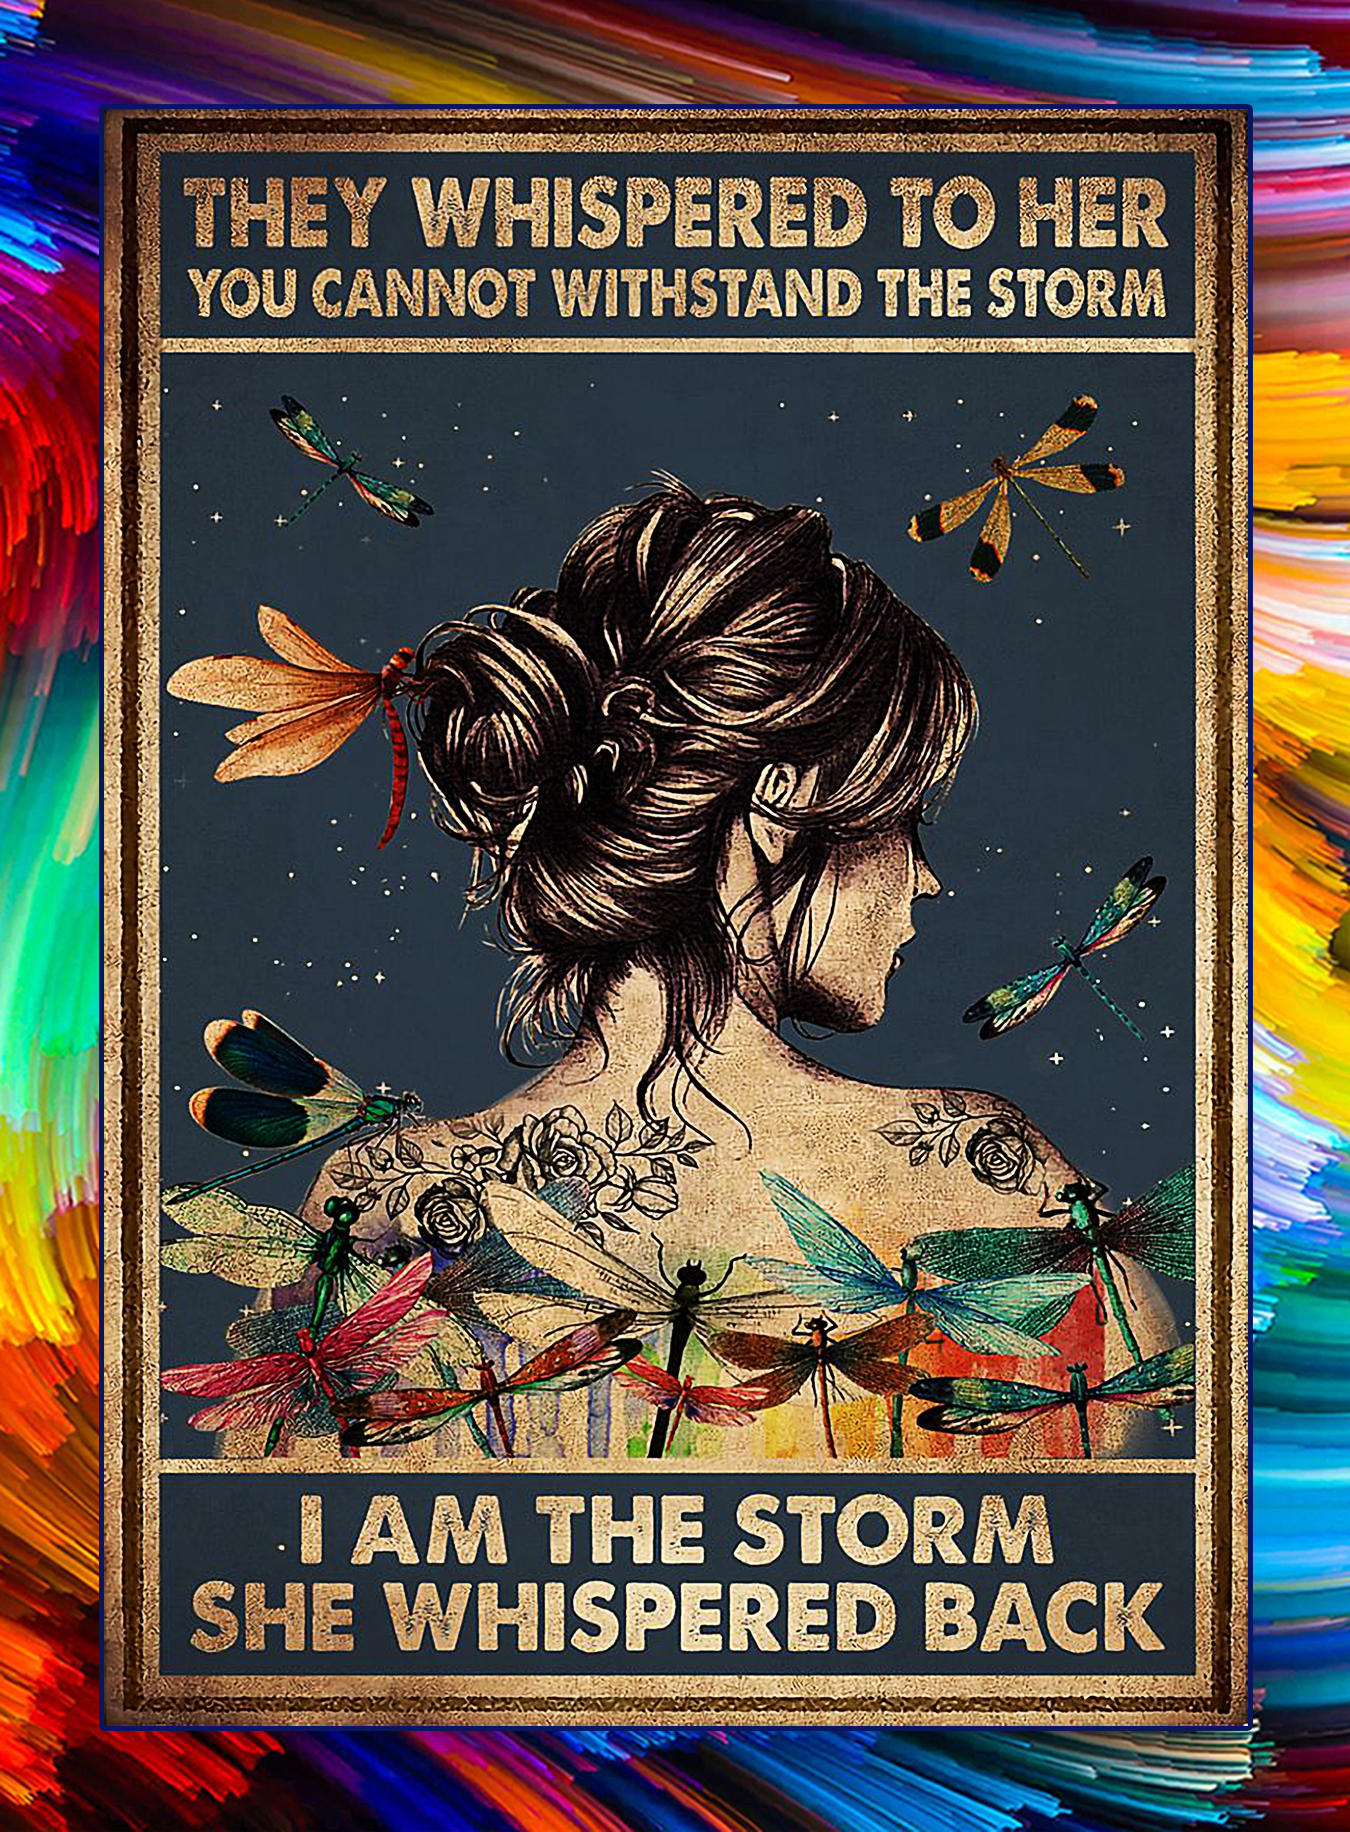 Dragonfly girl they whispered to her you can not withstand the storm poster - A3